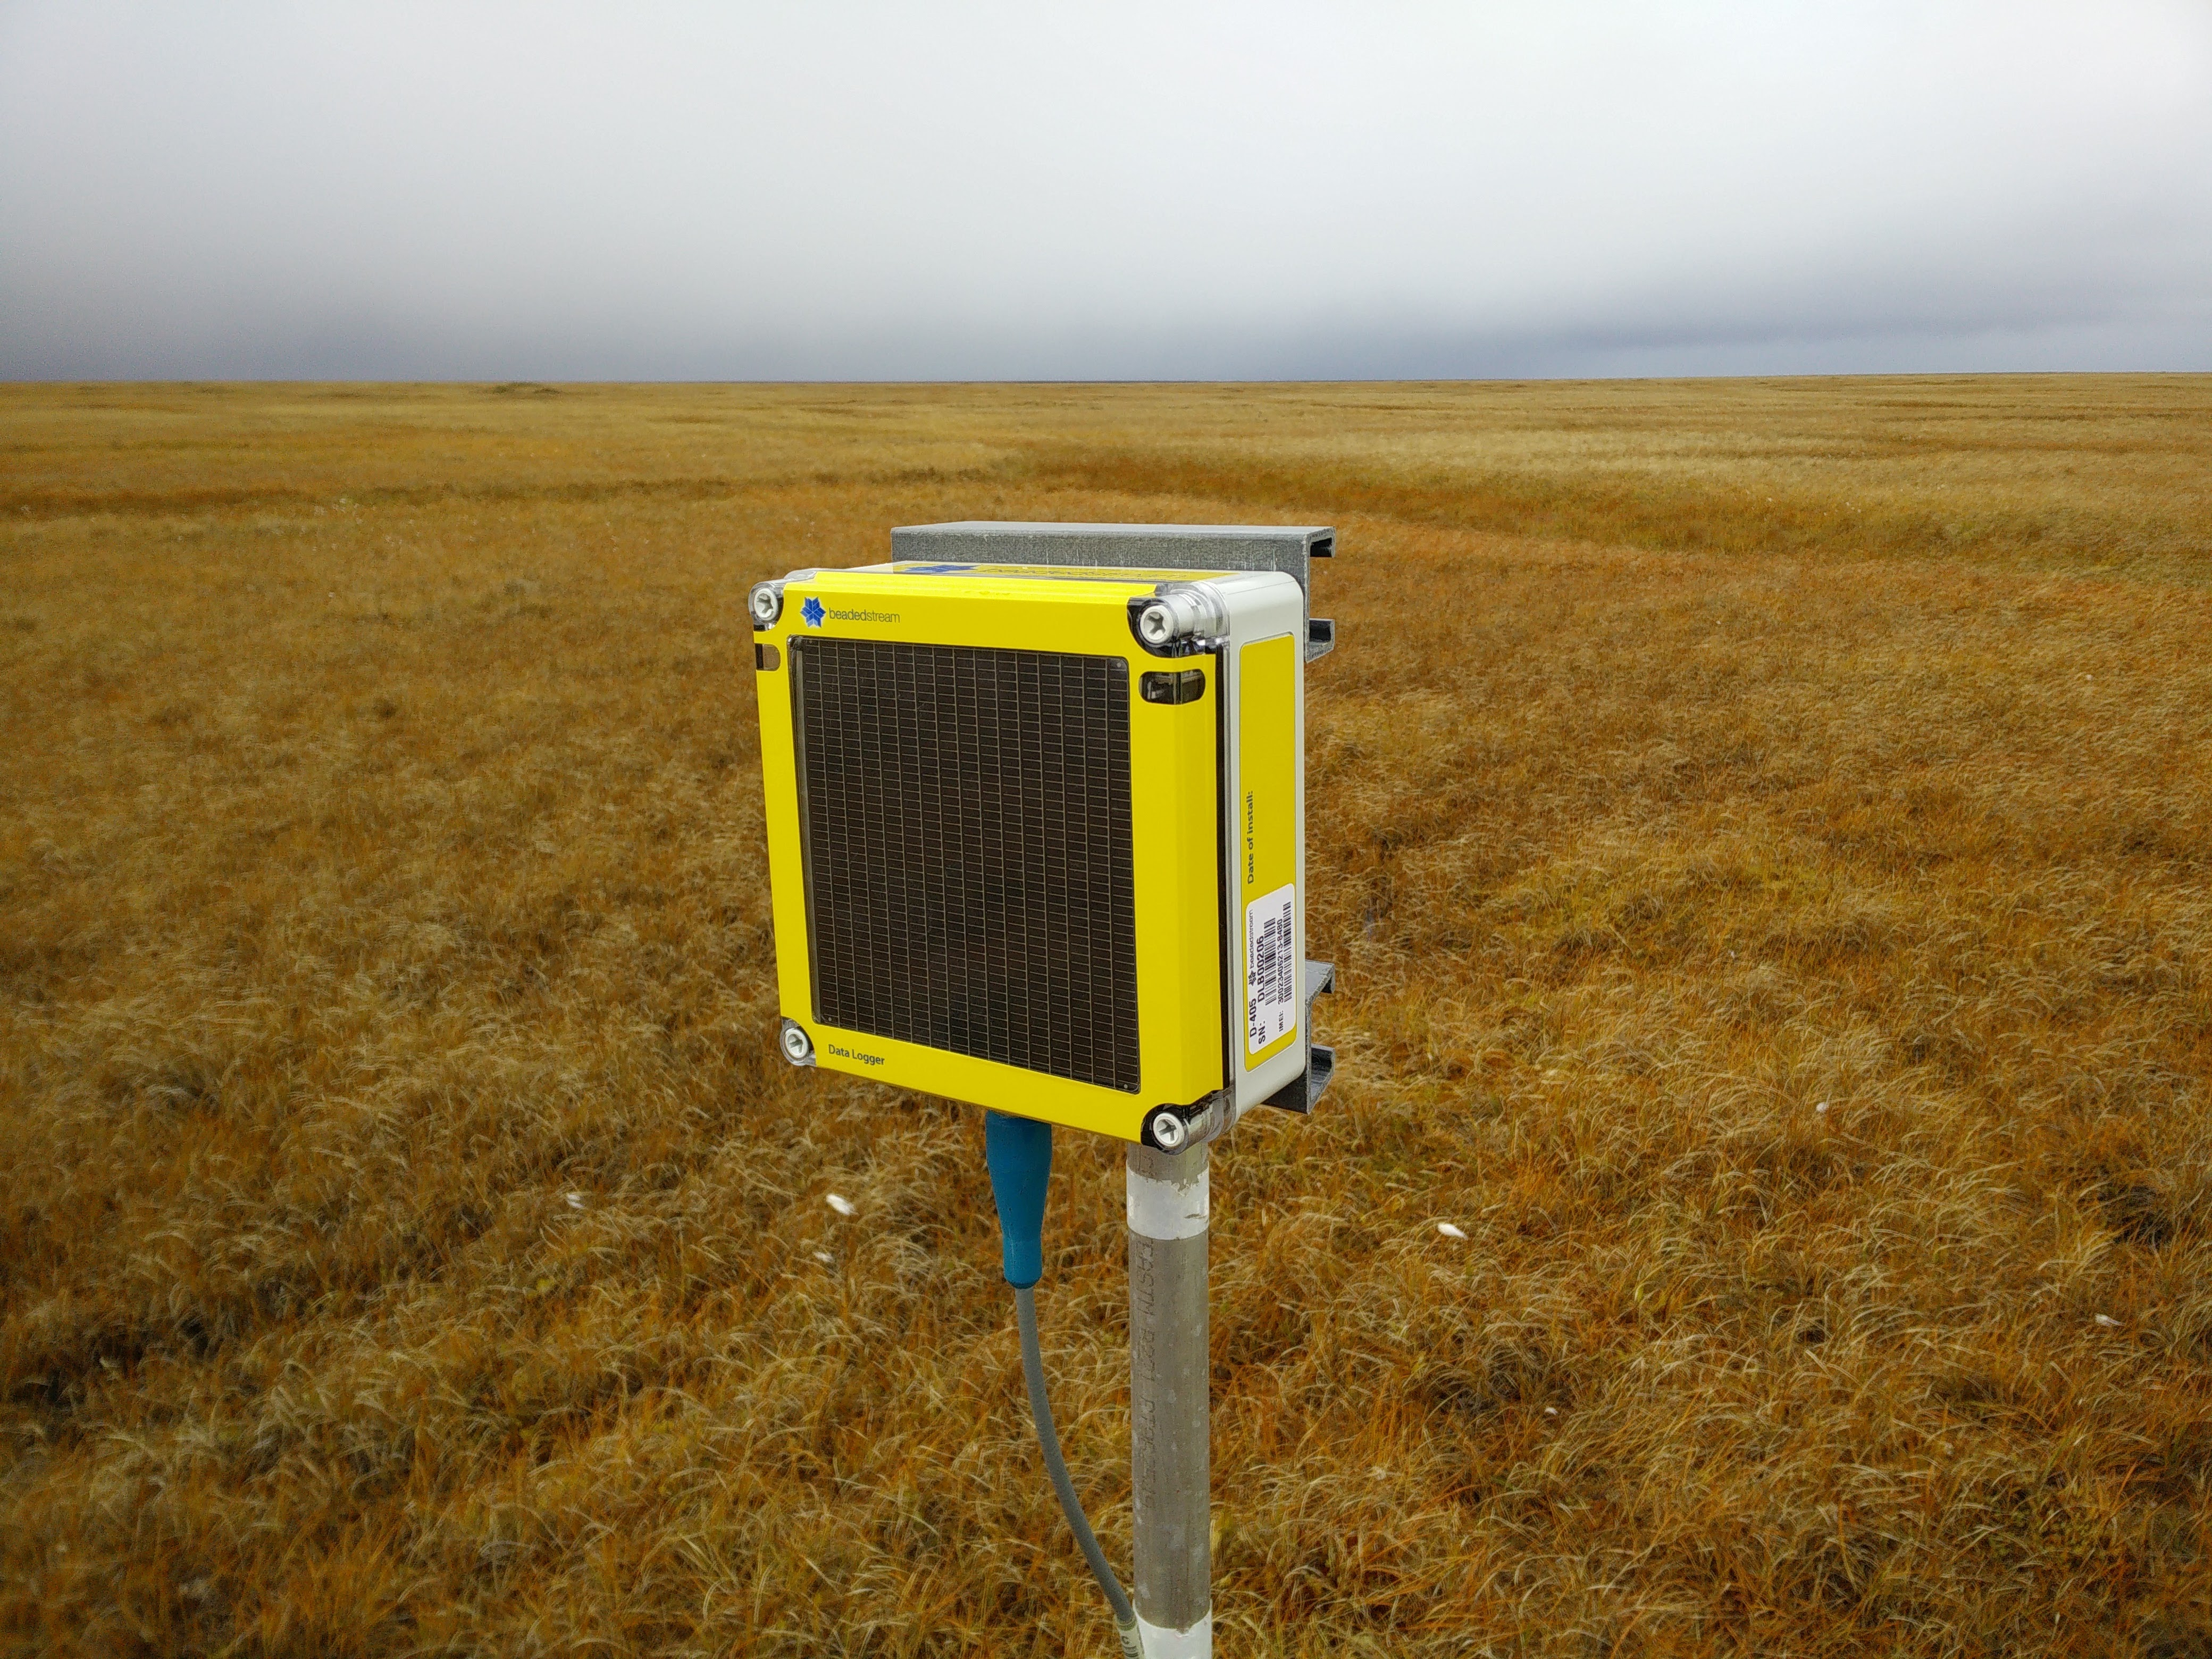 A BeadedStream transmitter automatically delivers real-time tundra temperatures to North Slope operators and regulators (Paul Harren)